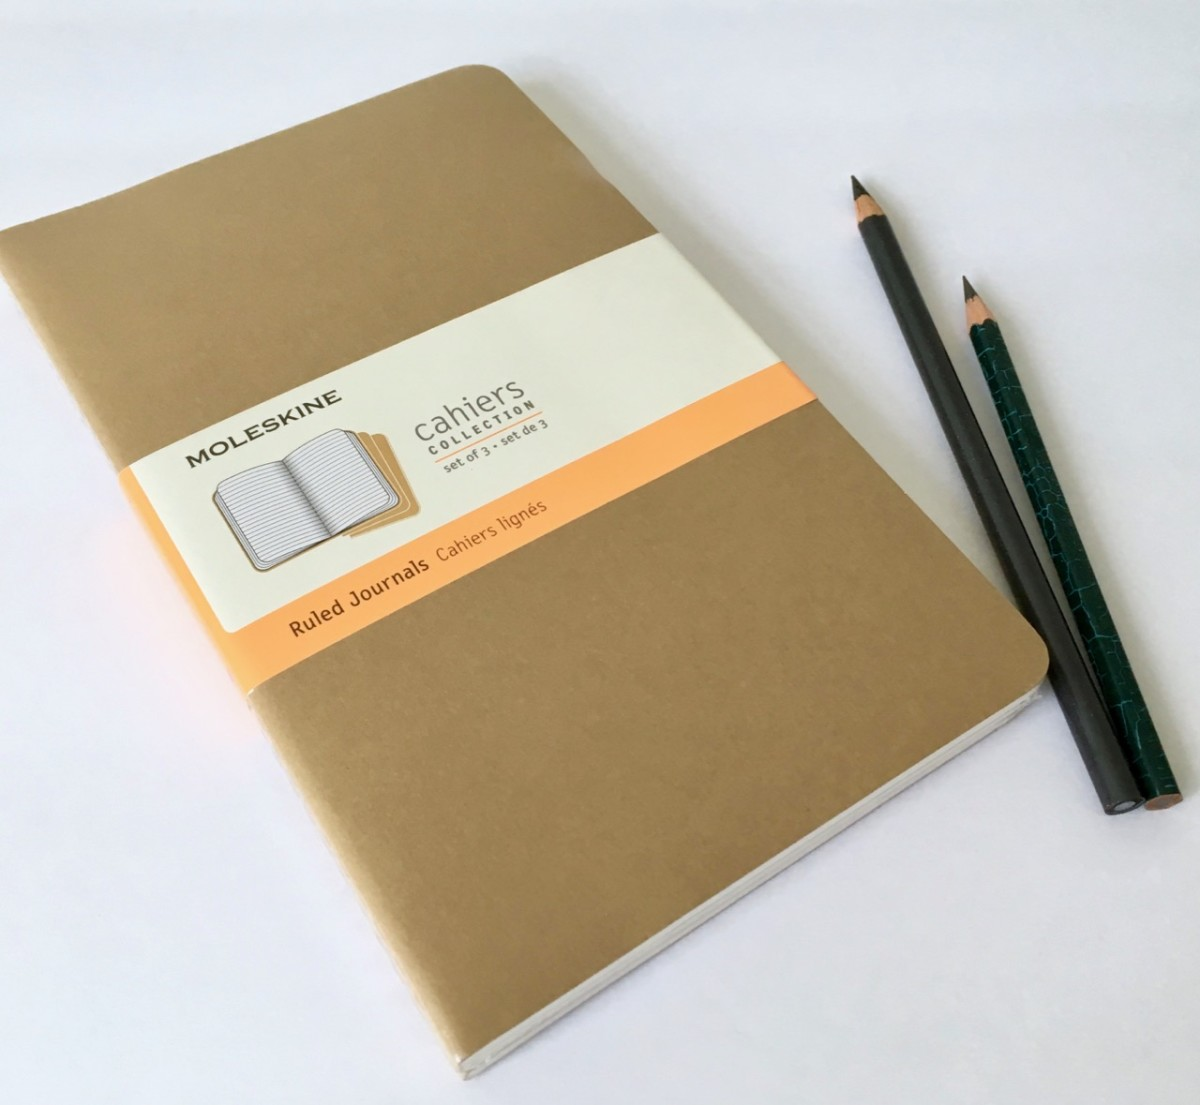 Moleskine Cahier Journal Set